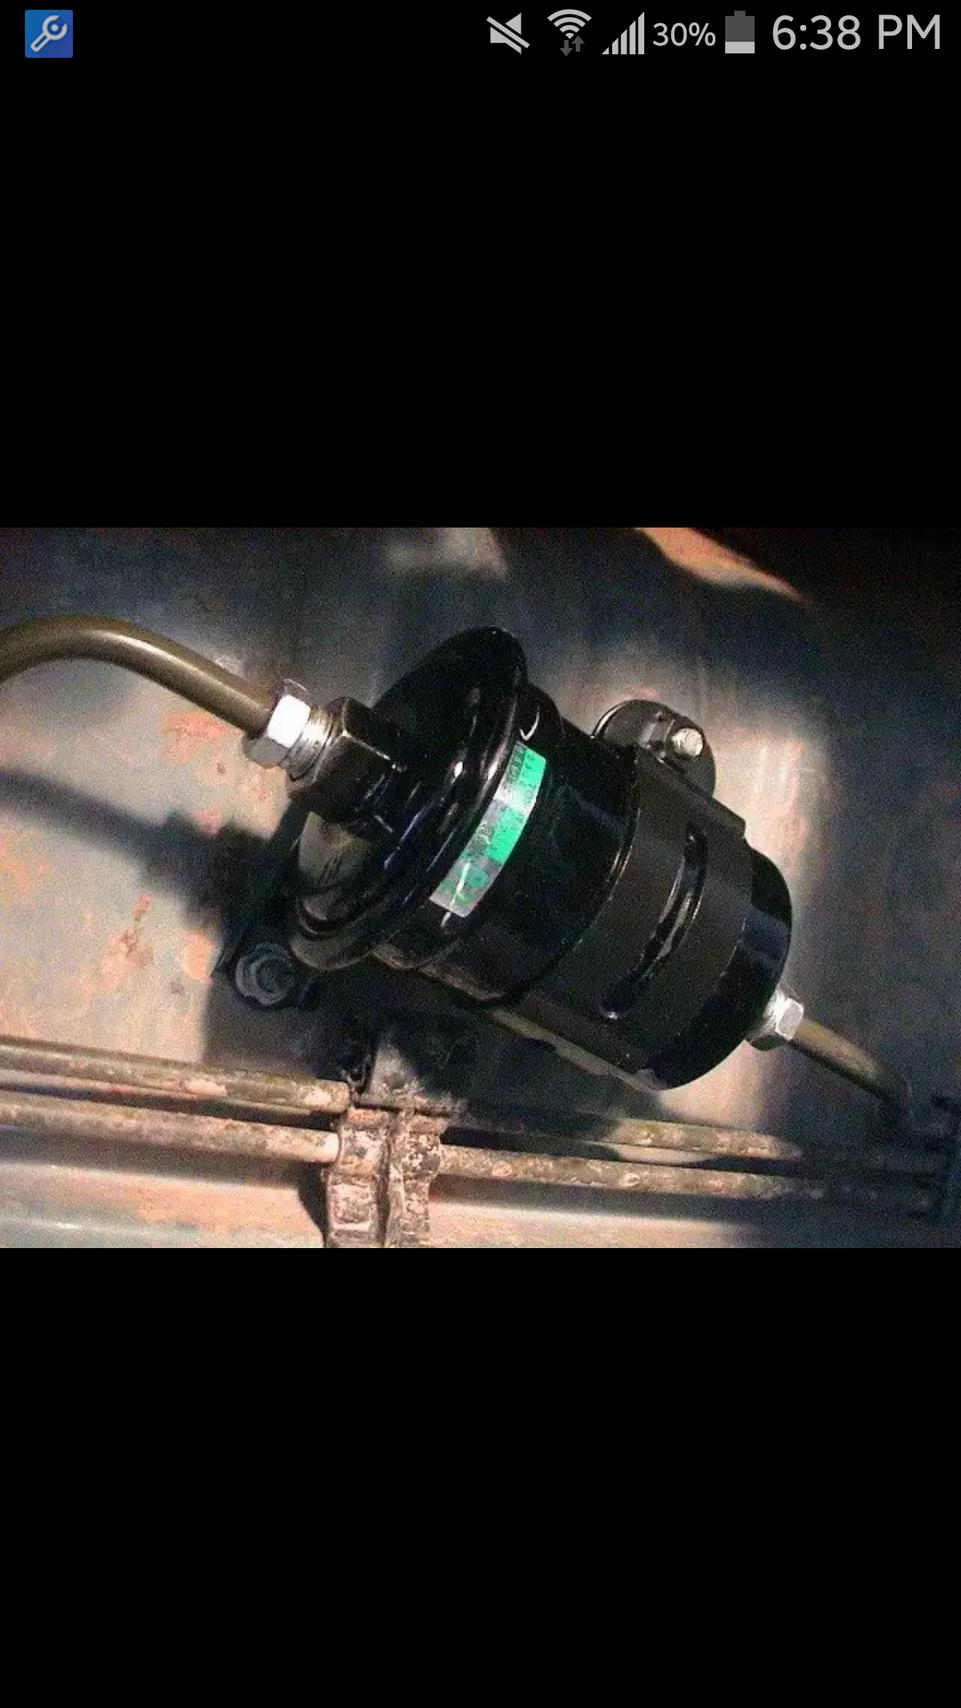 Changed Fuel Filter And Now Its Leaking Like Crazy Toyota 4runner Sienna Attached Screenshot 2017 09 04 16 37 29 1056 Kb